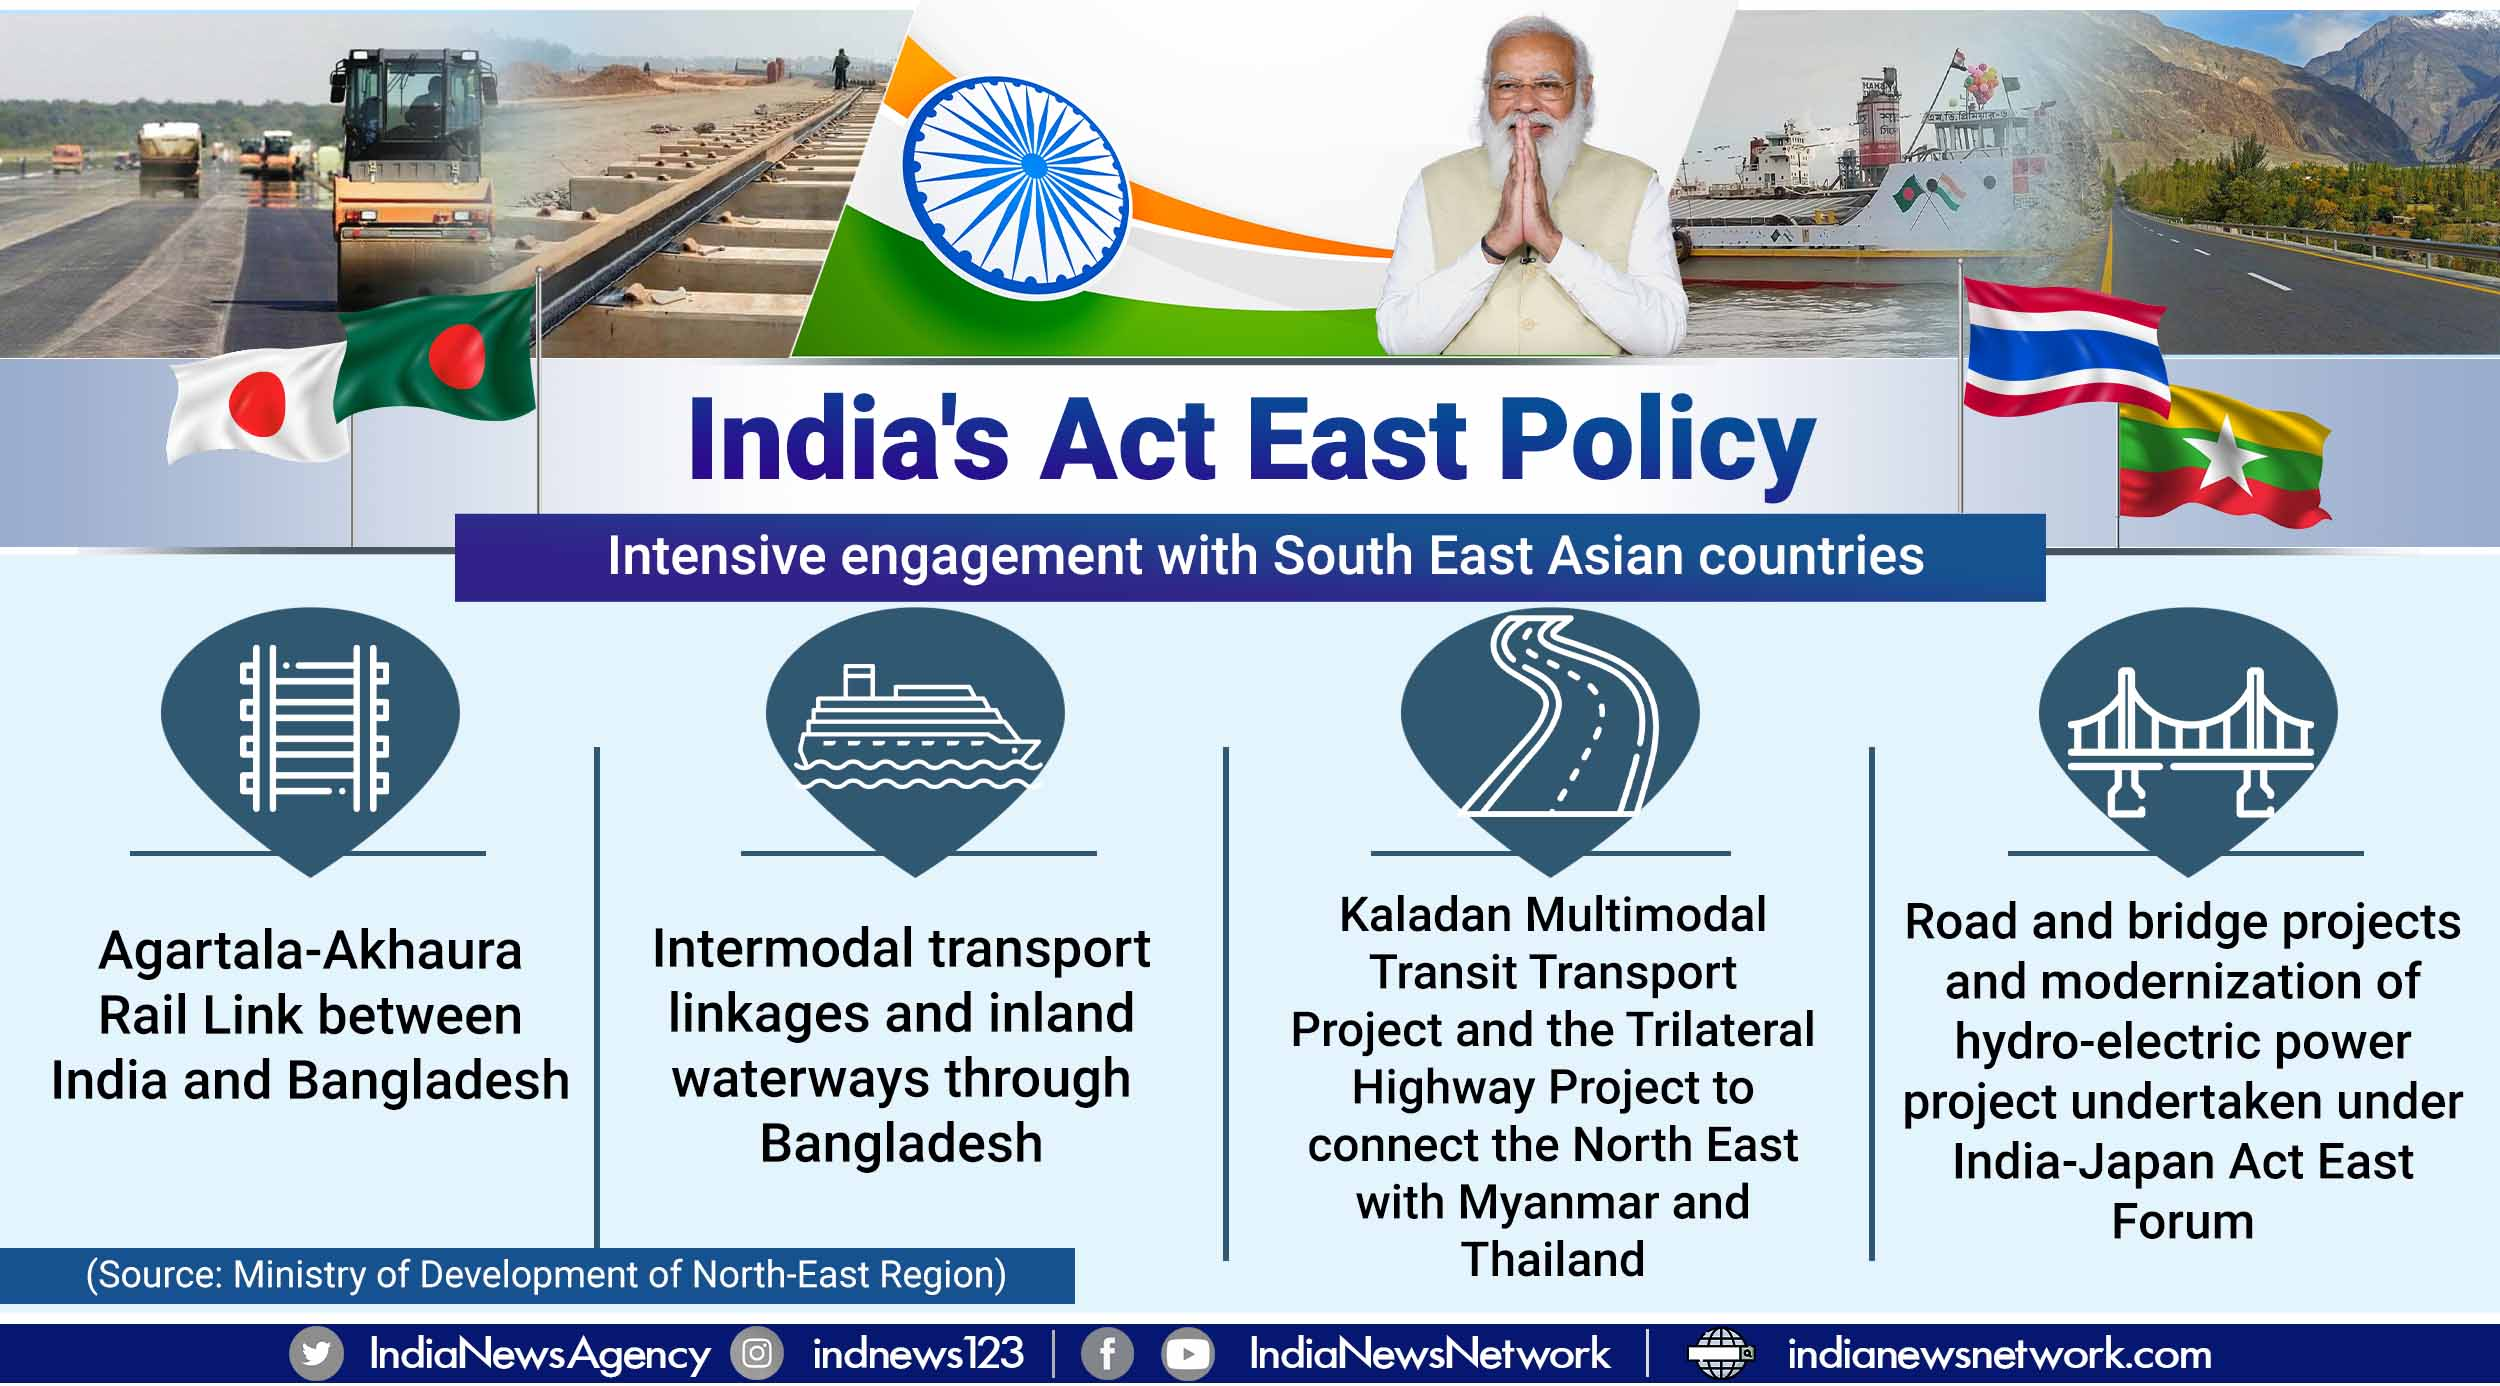 Connectivity an important element of India's Act East policy